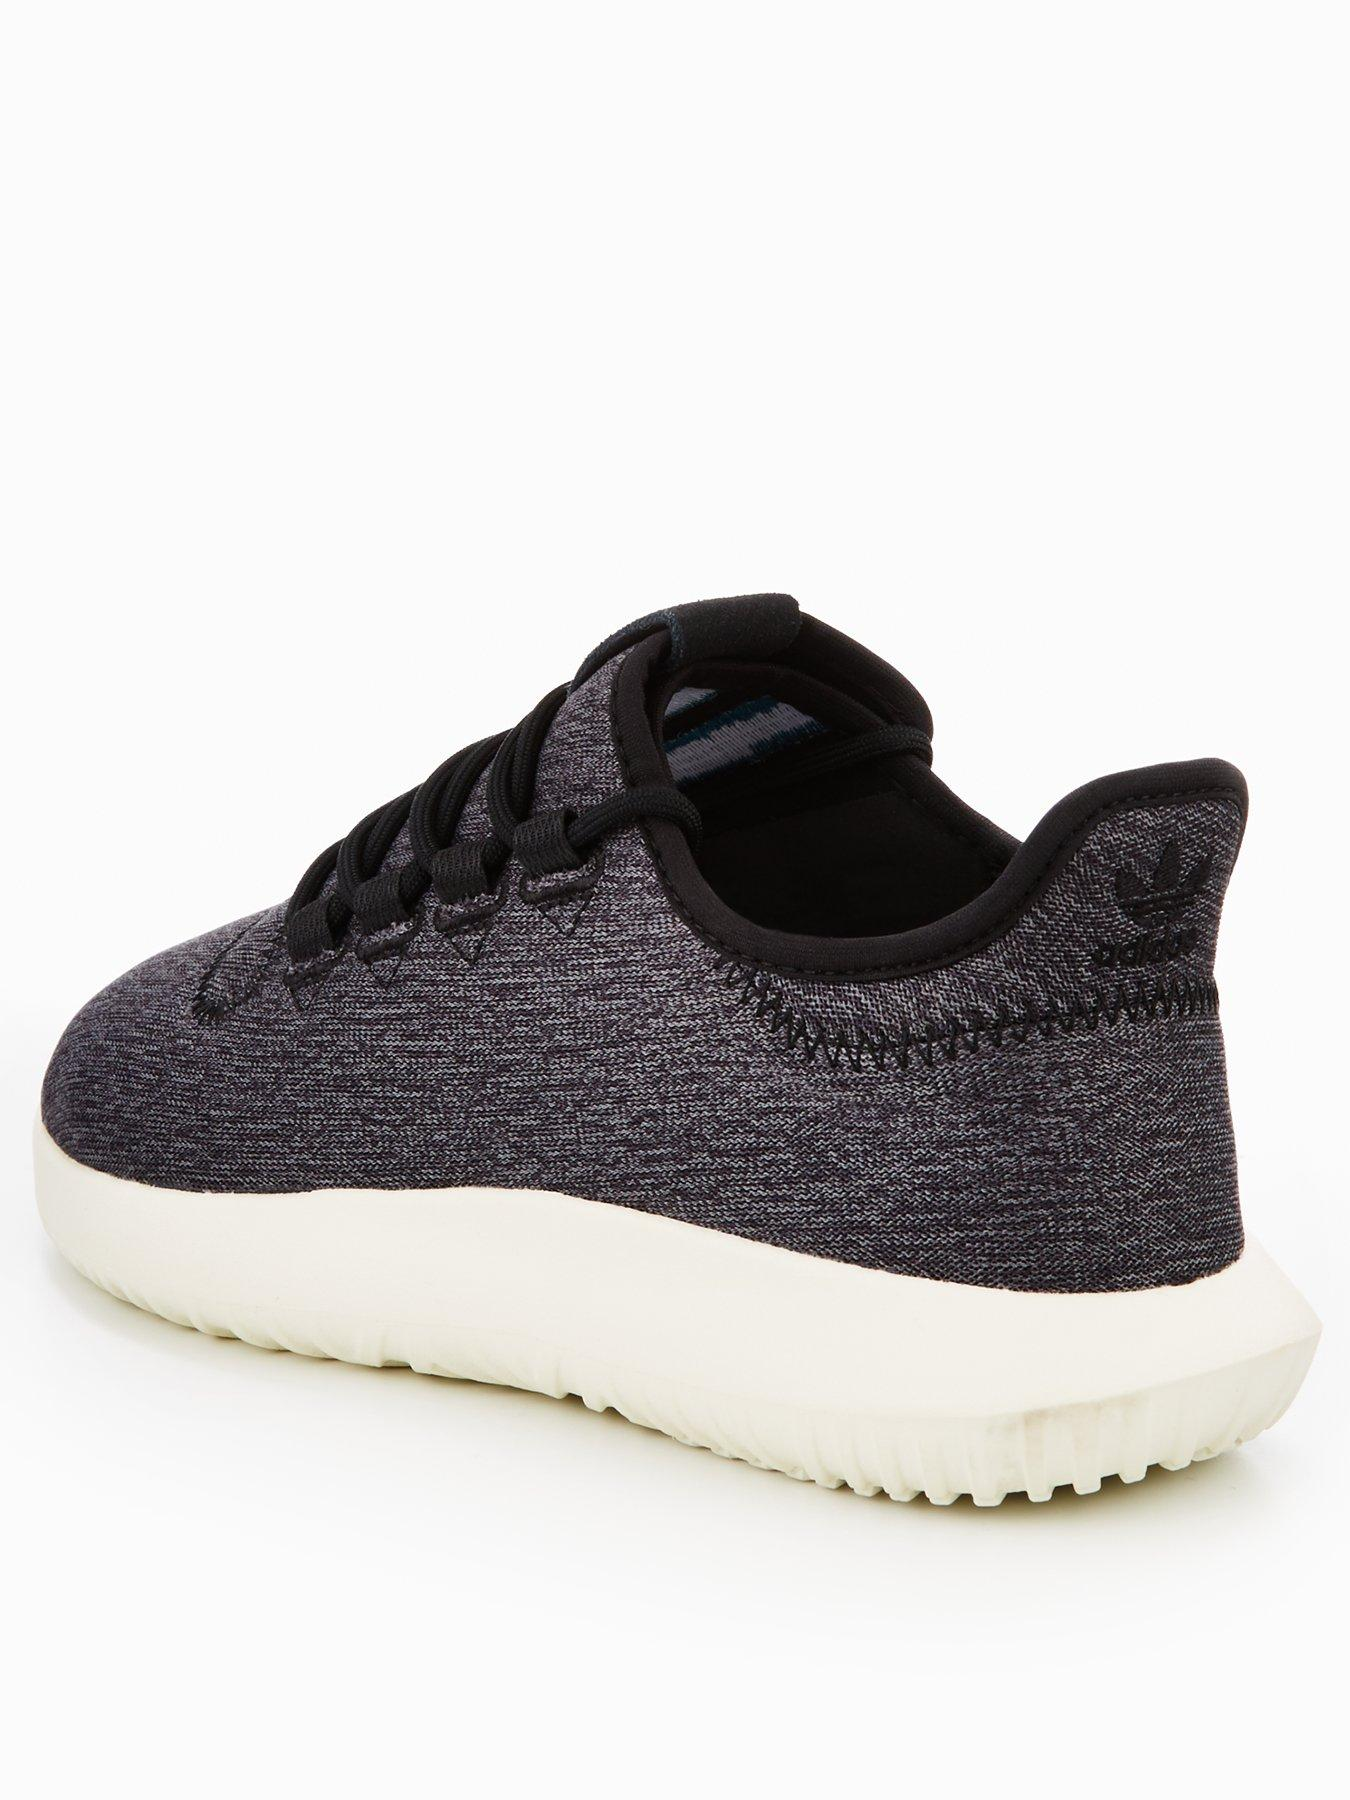 adidas Originals Tubular Shadow - Black |